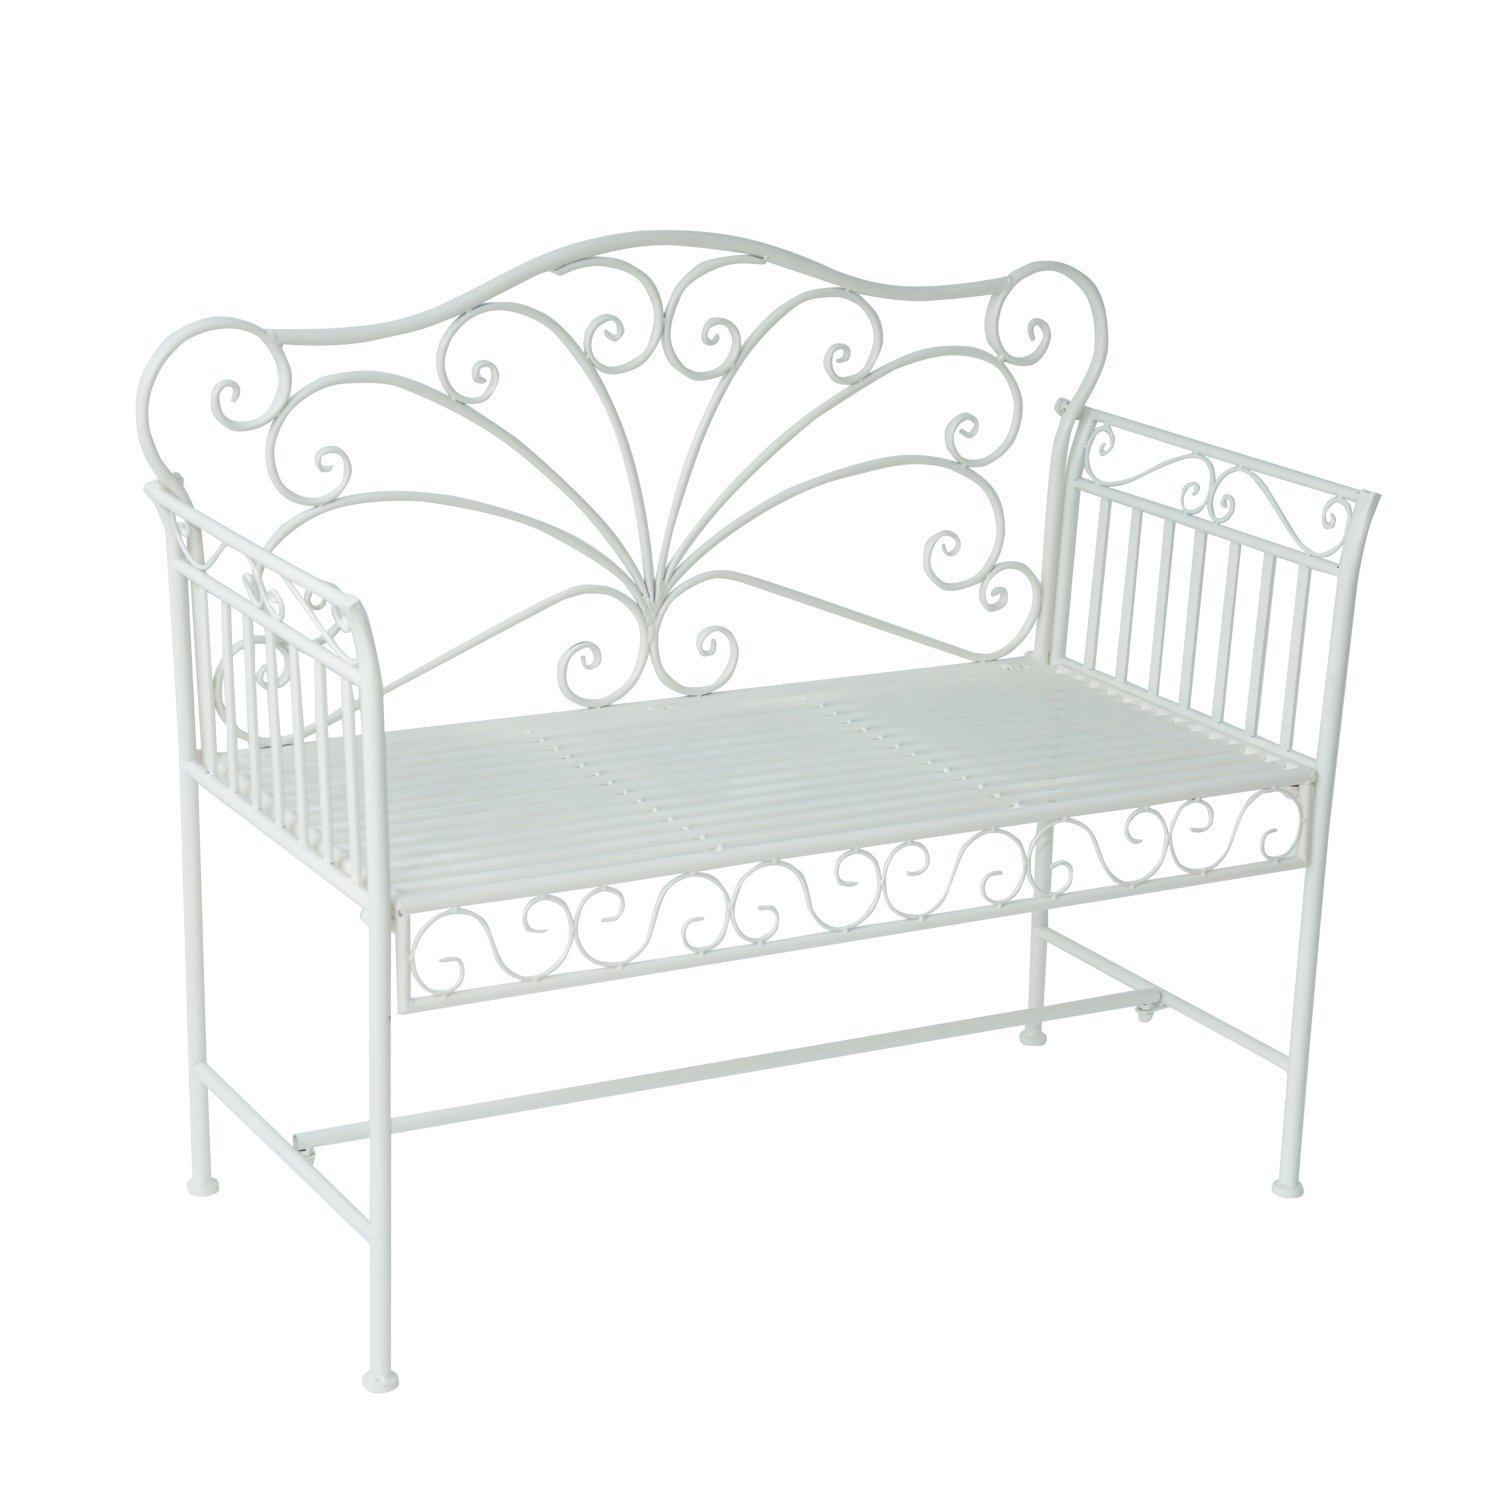 "Outsunny 43"" Antique Metal Outdoor Patio Garden Bench - Cream White"